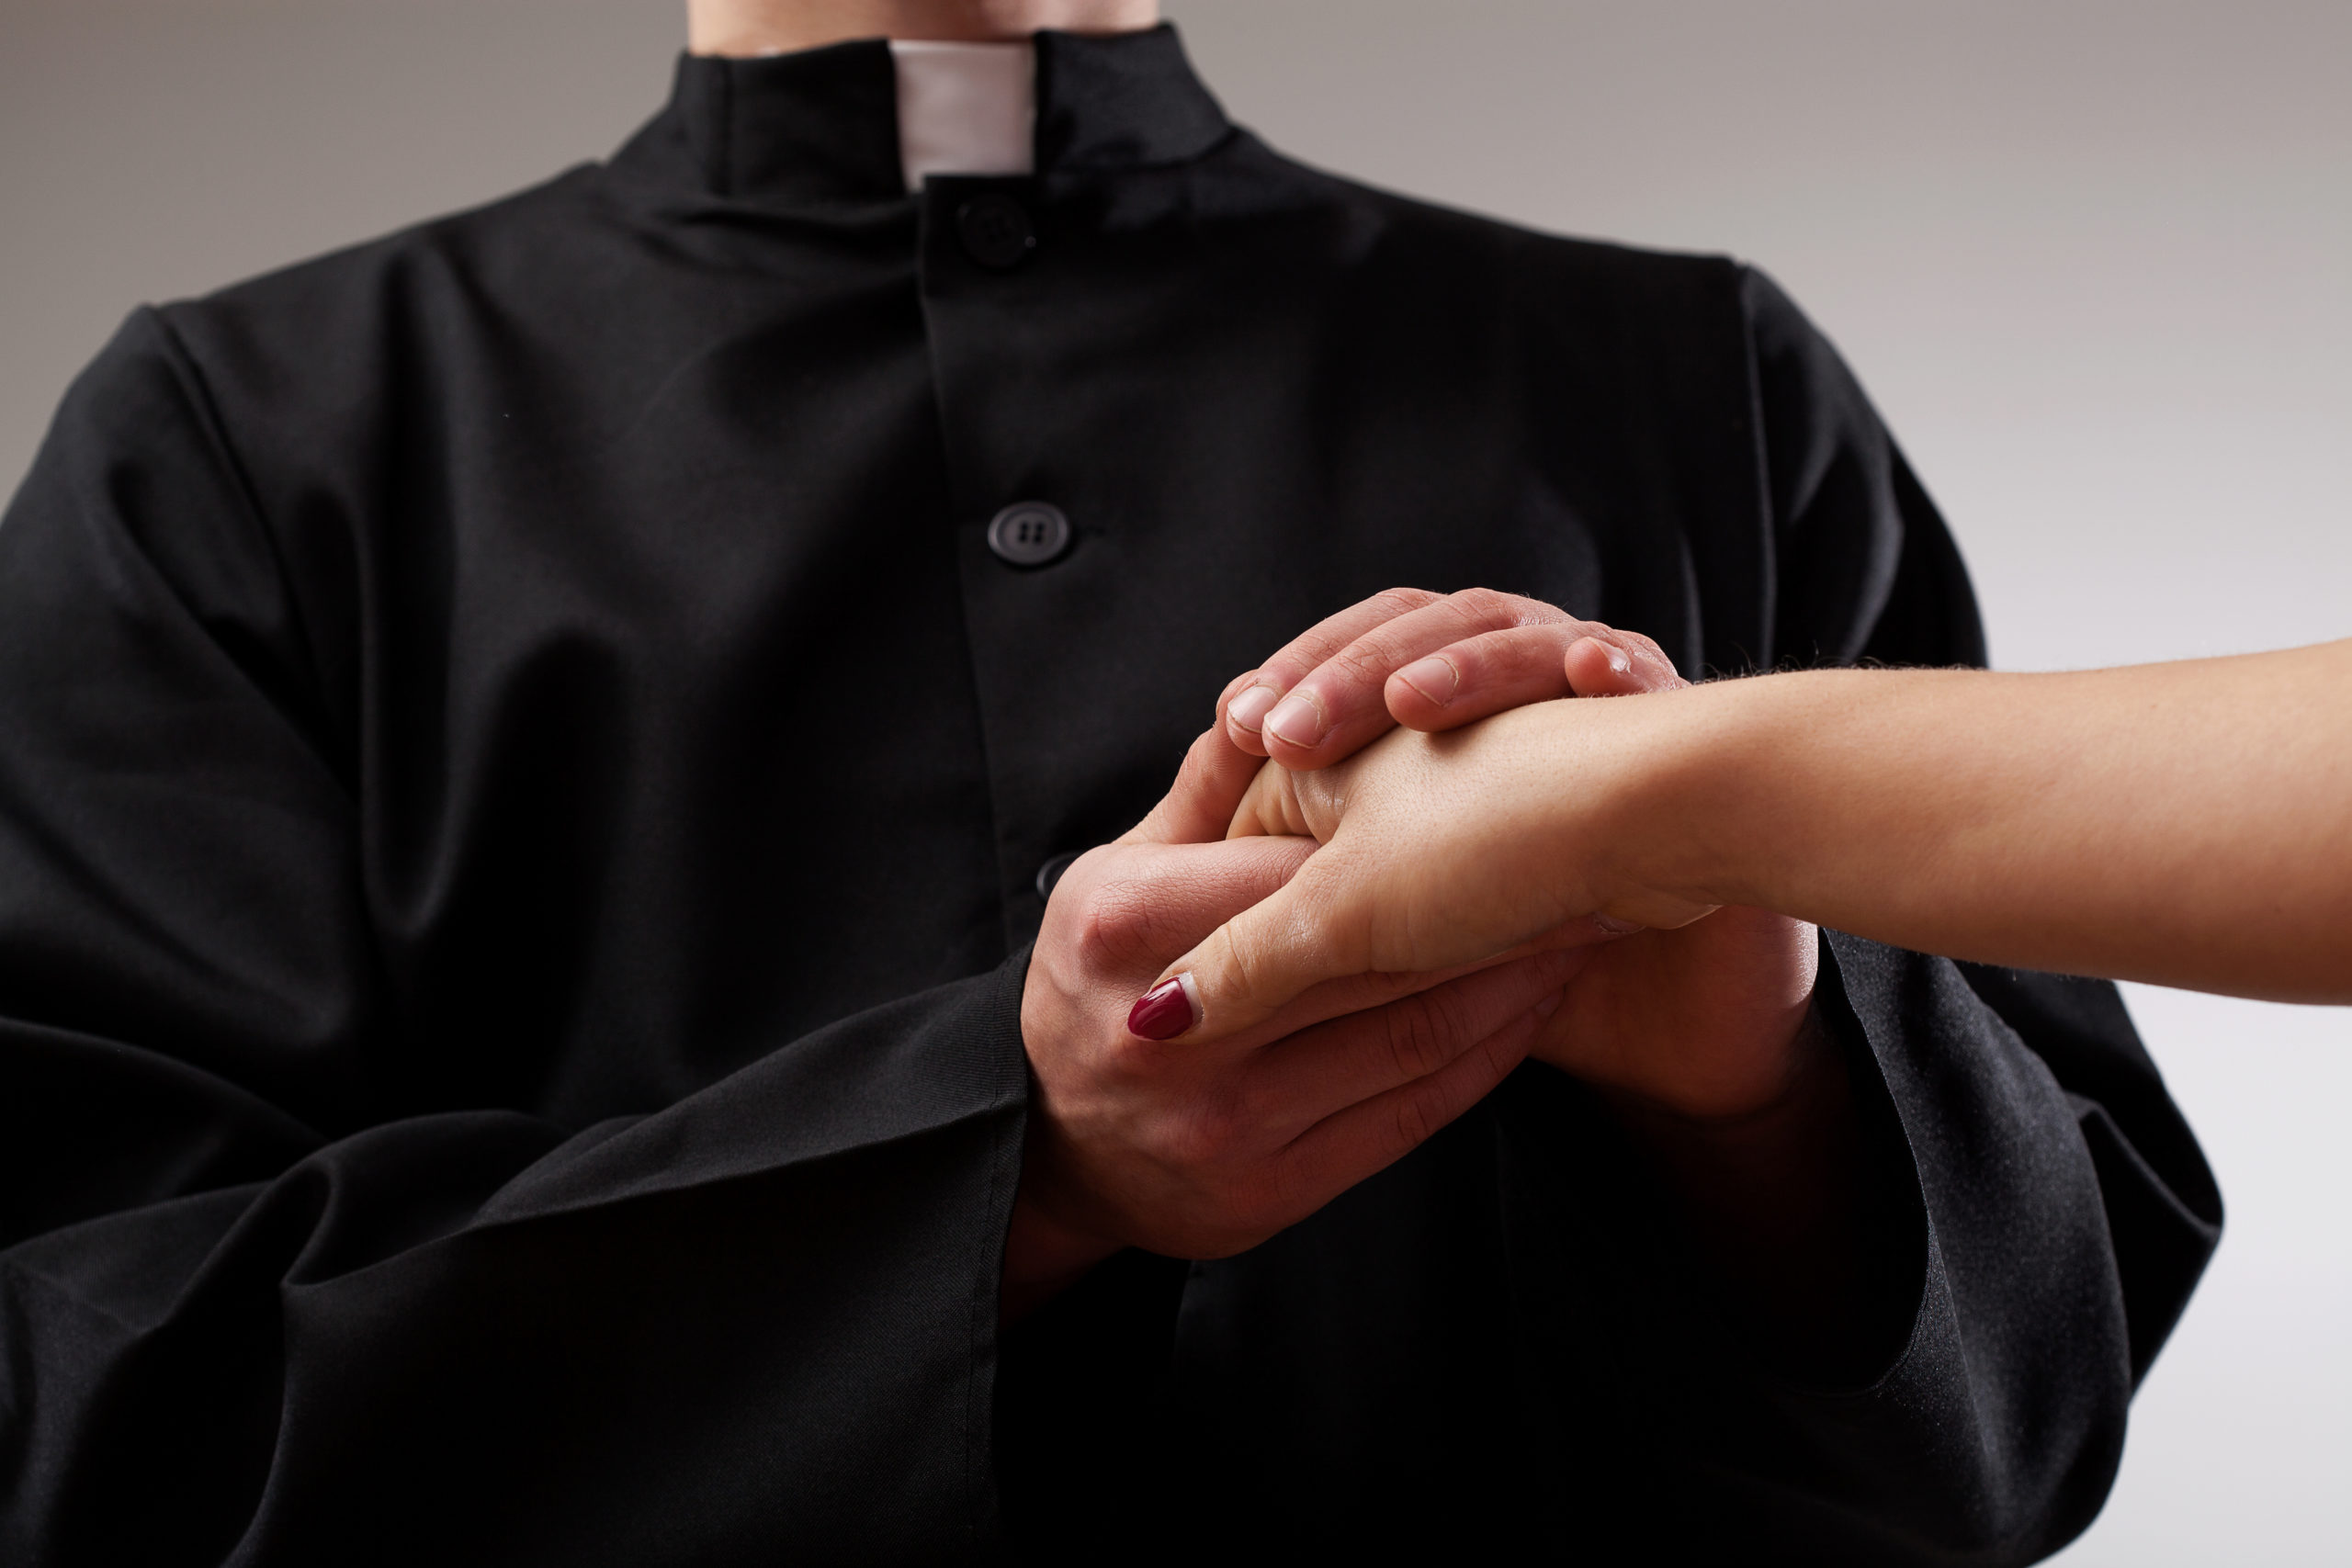 Should married men be able to become priests?